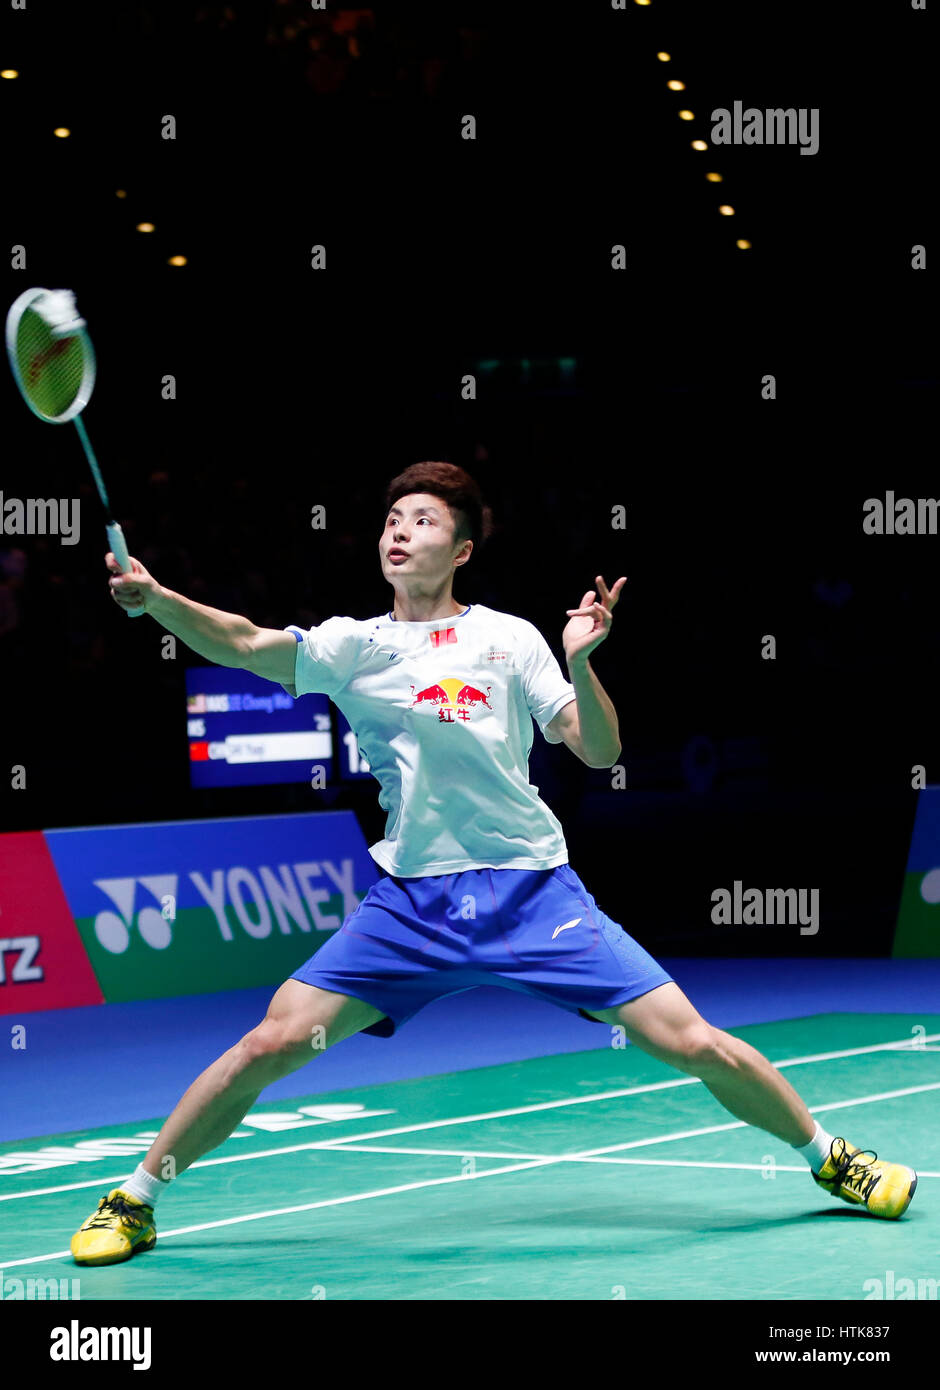 Birmingham 12th Mar 2017 Shi Yuqi of China petes during the